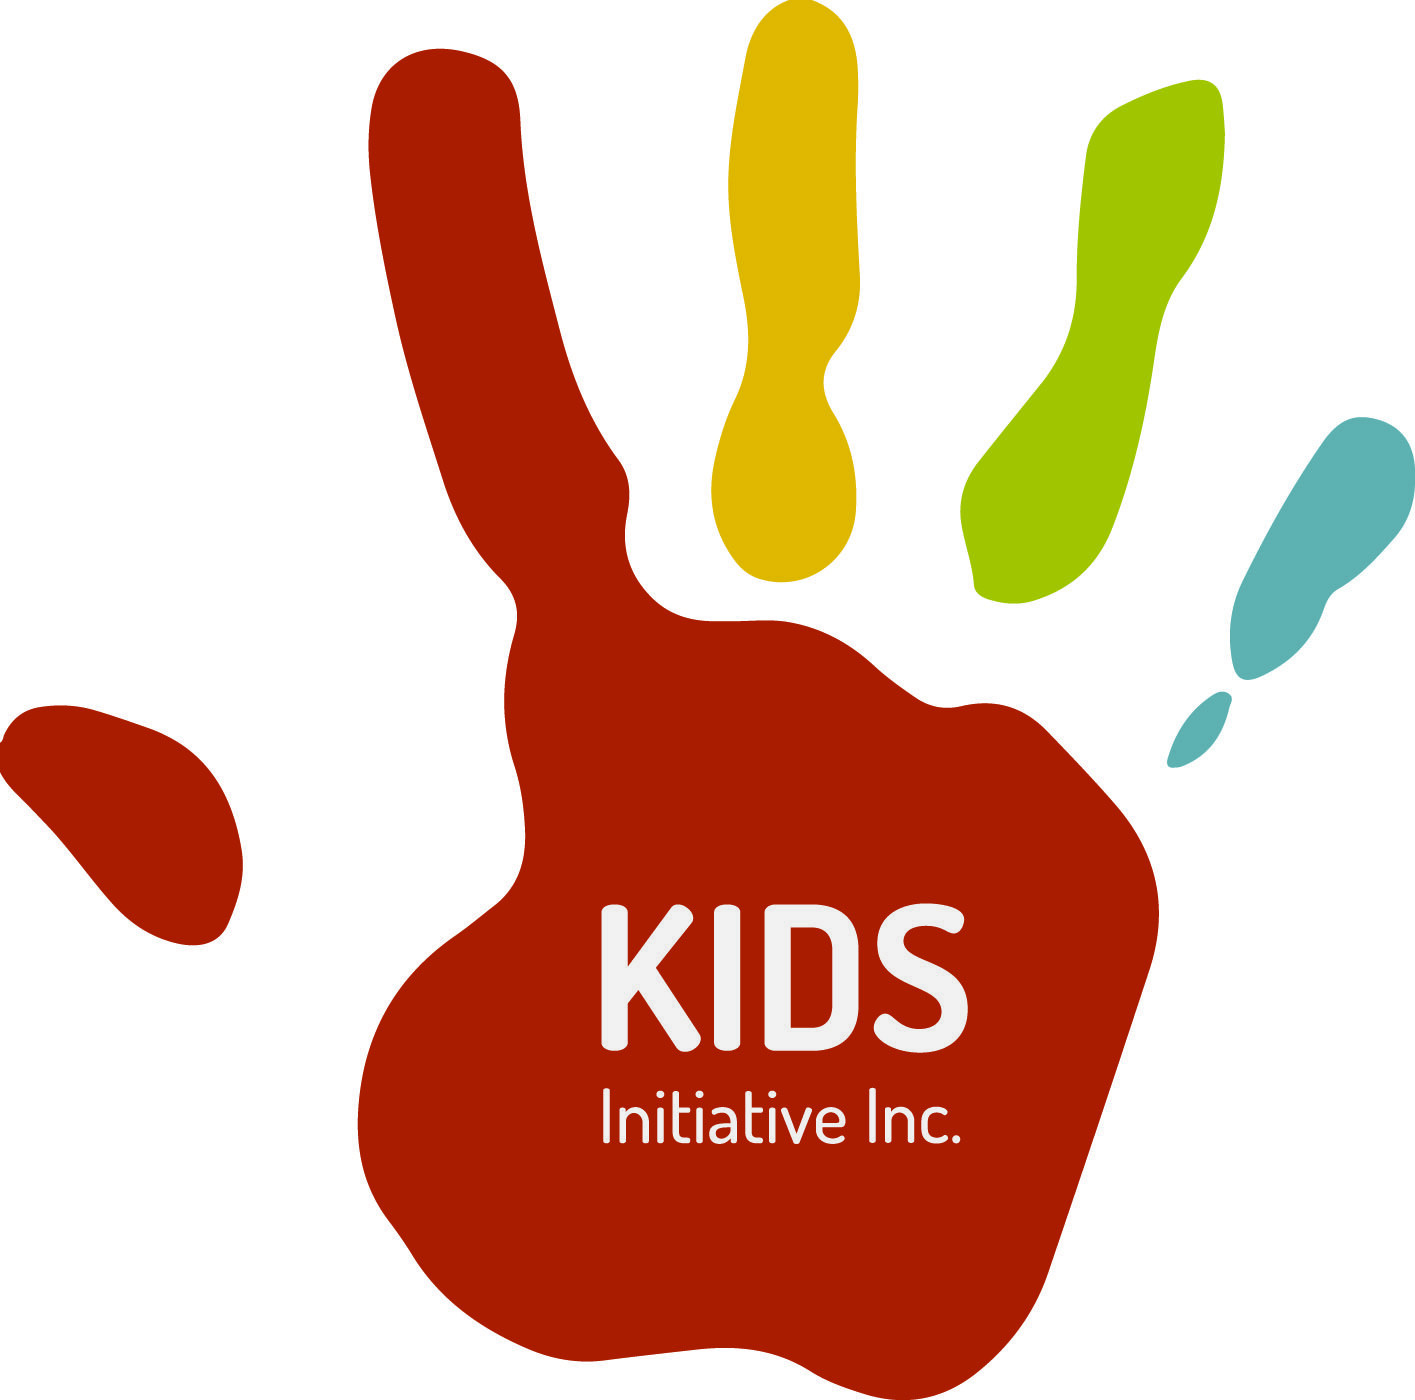 KIDS Initiative Inc.